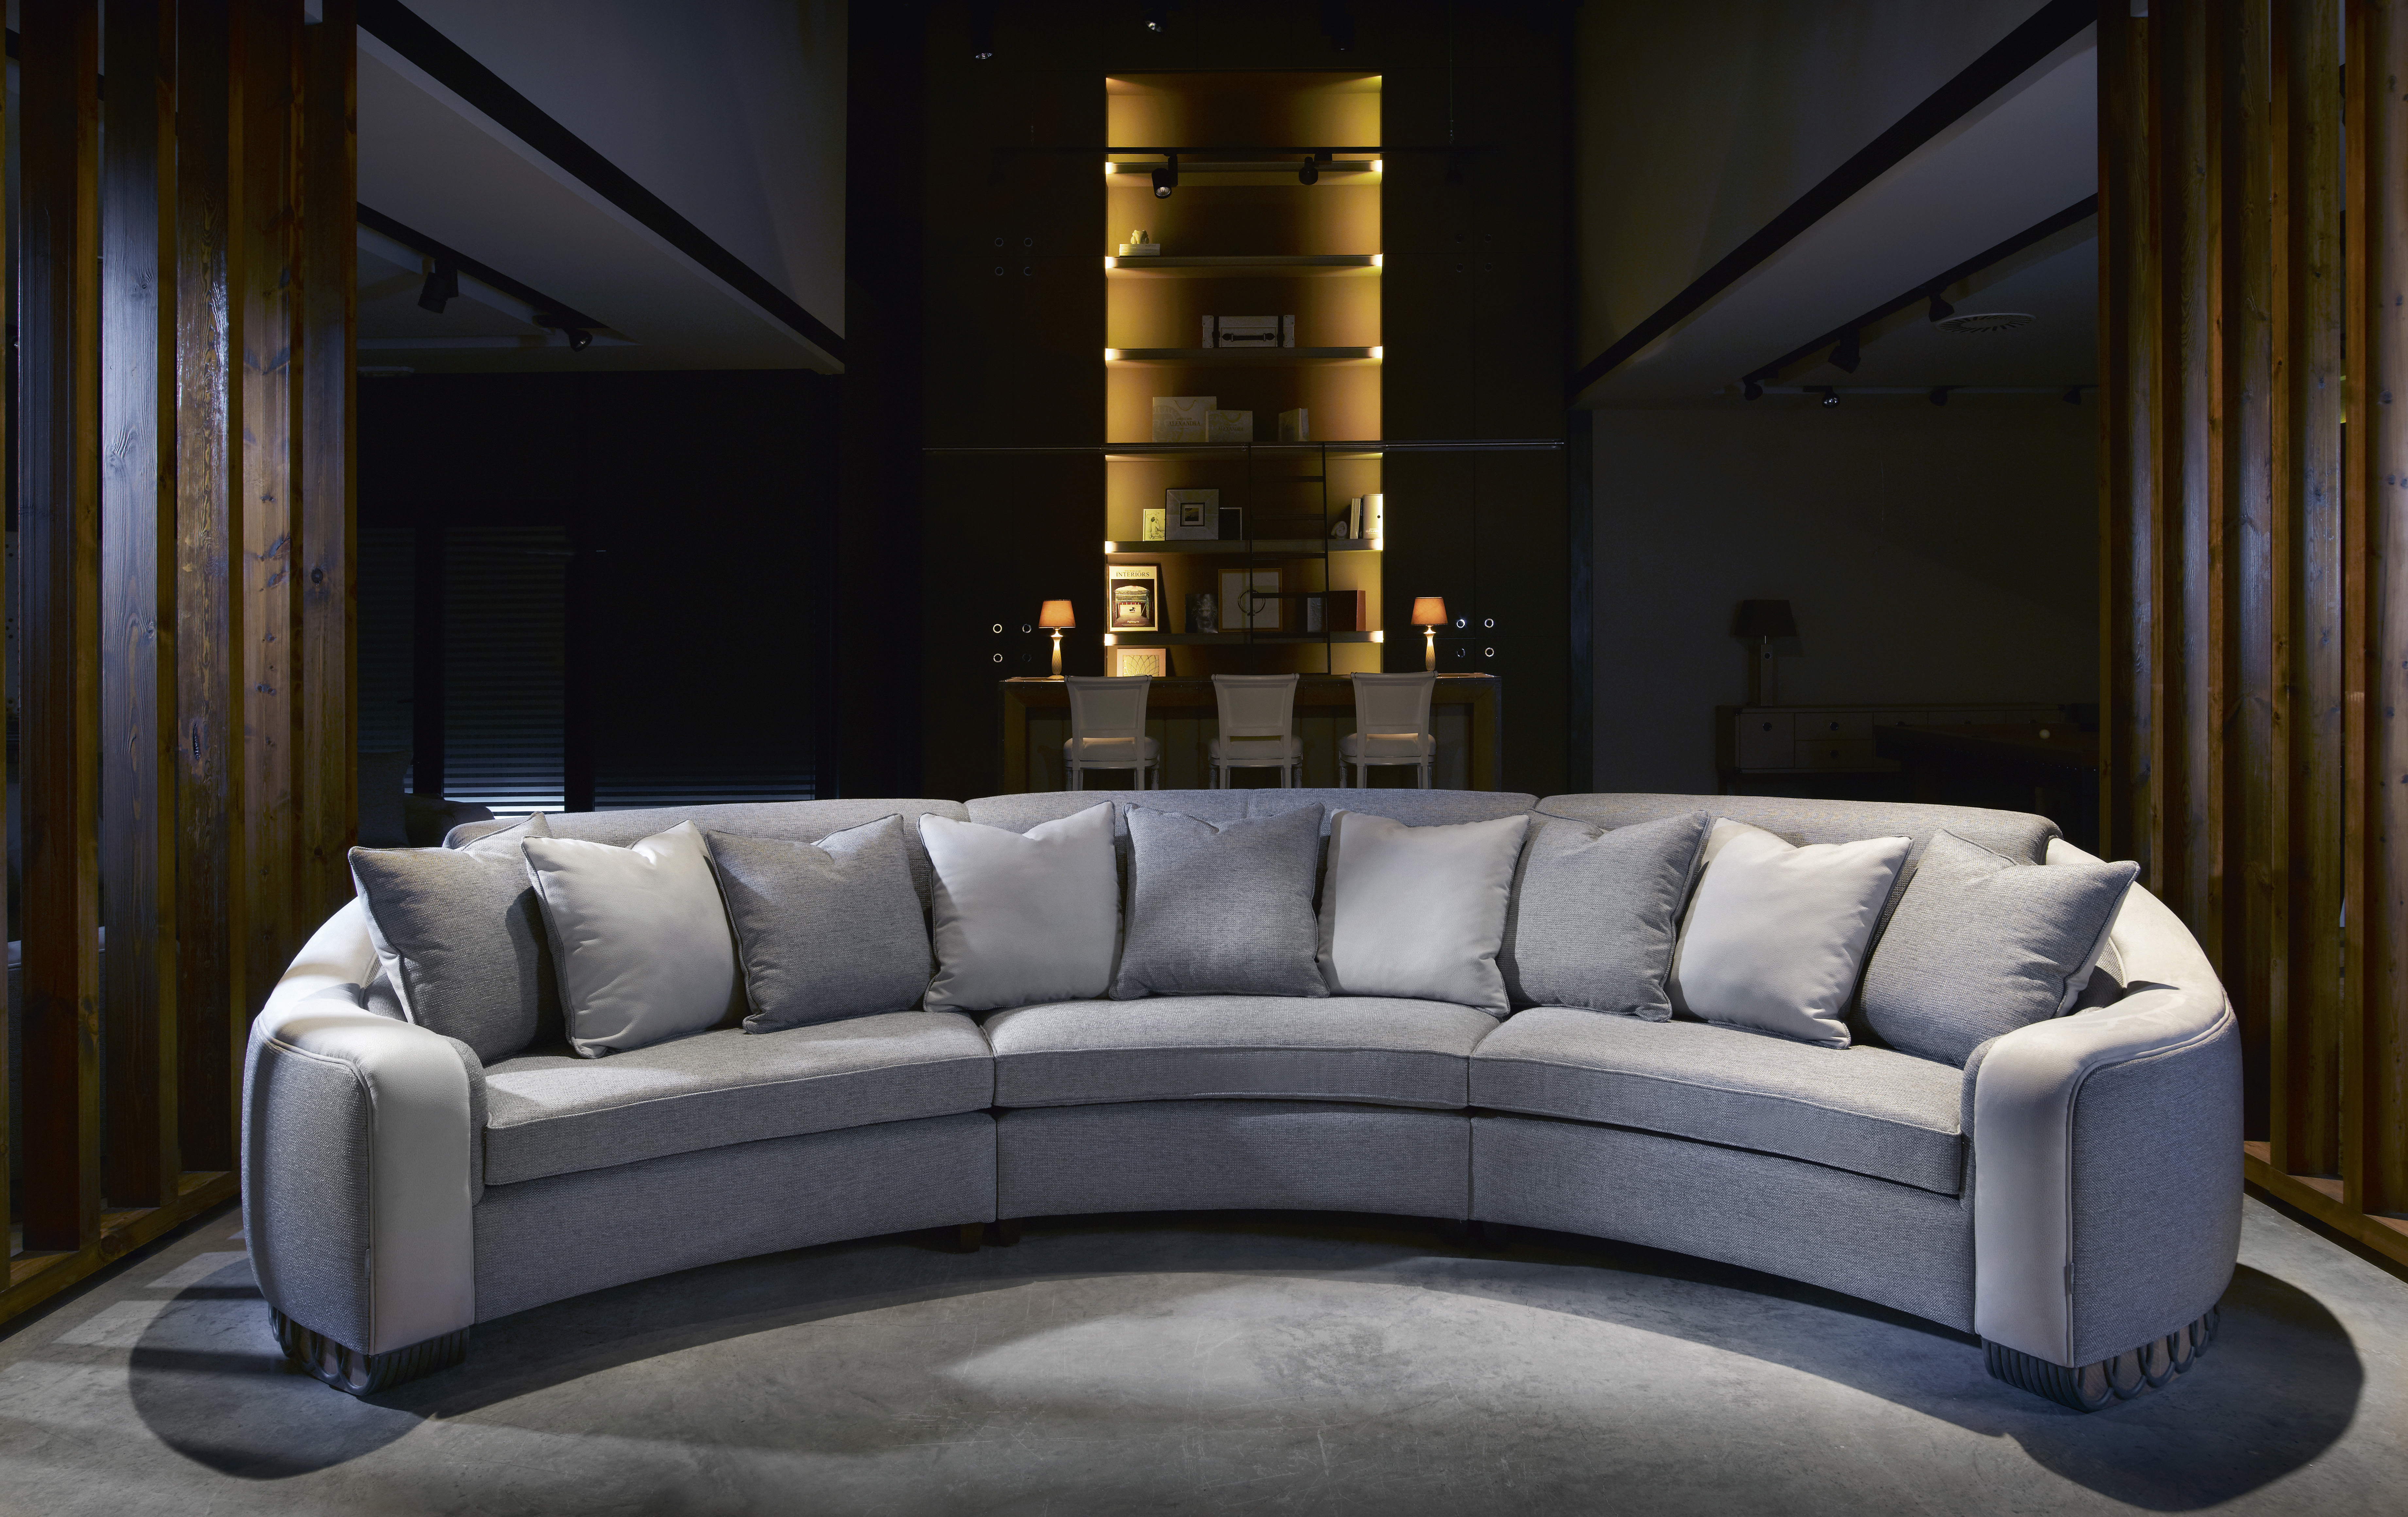 Coleccion alexandra uk luxury furniture luxury sofas - Contemporary chairs for living room uk ...